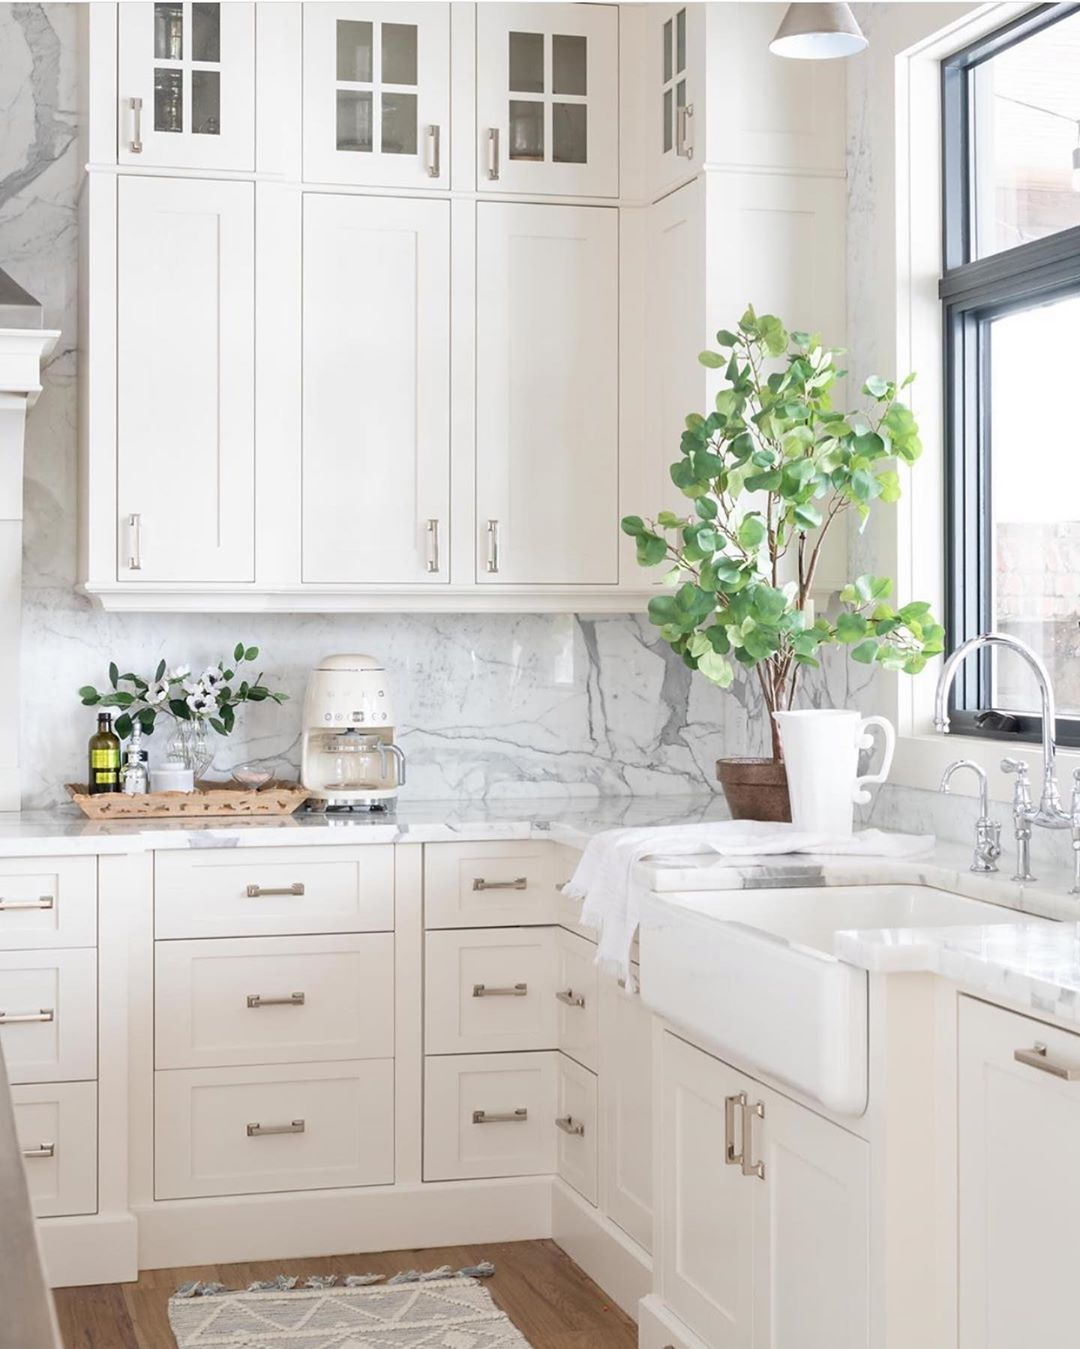 Pretty Little Interior On Instagram Gorgeous White Kitchen Inspo Love In 2020 Interior Design Kitchen Small White Marble Kitchen Countertops Small Kitchen Cabinets